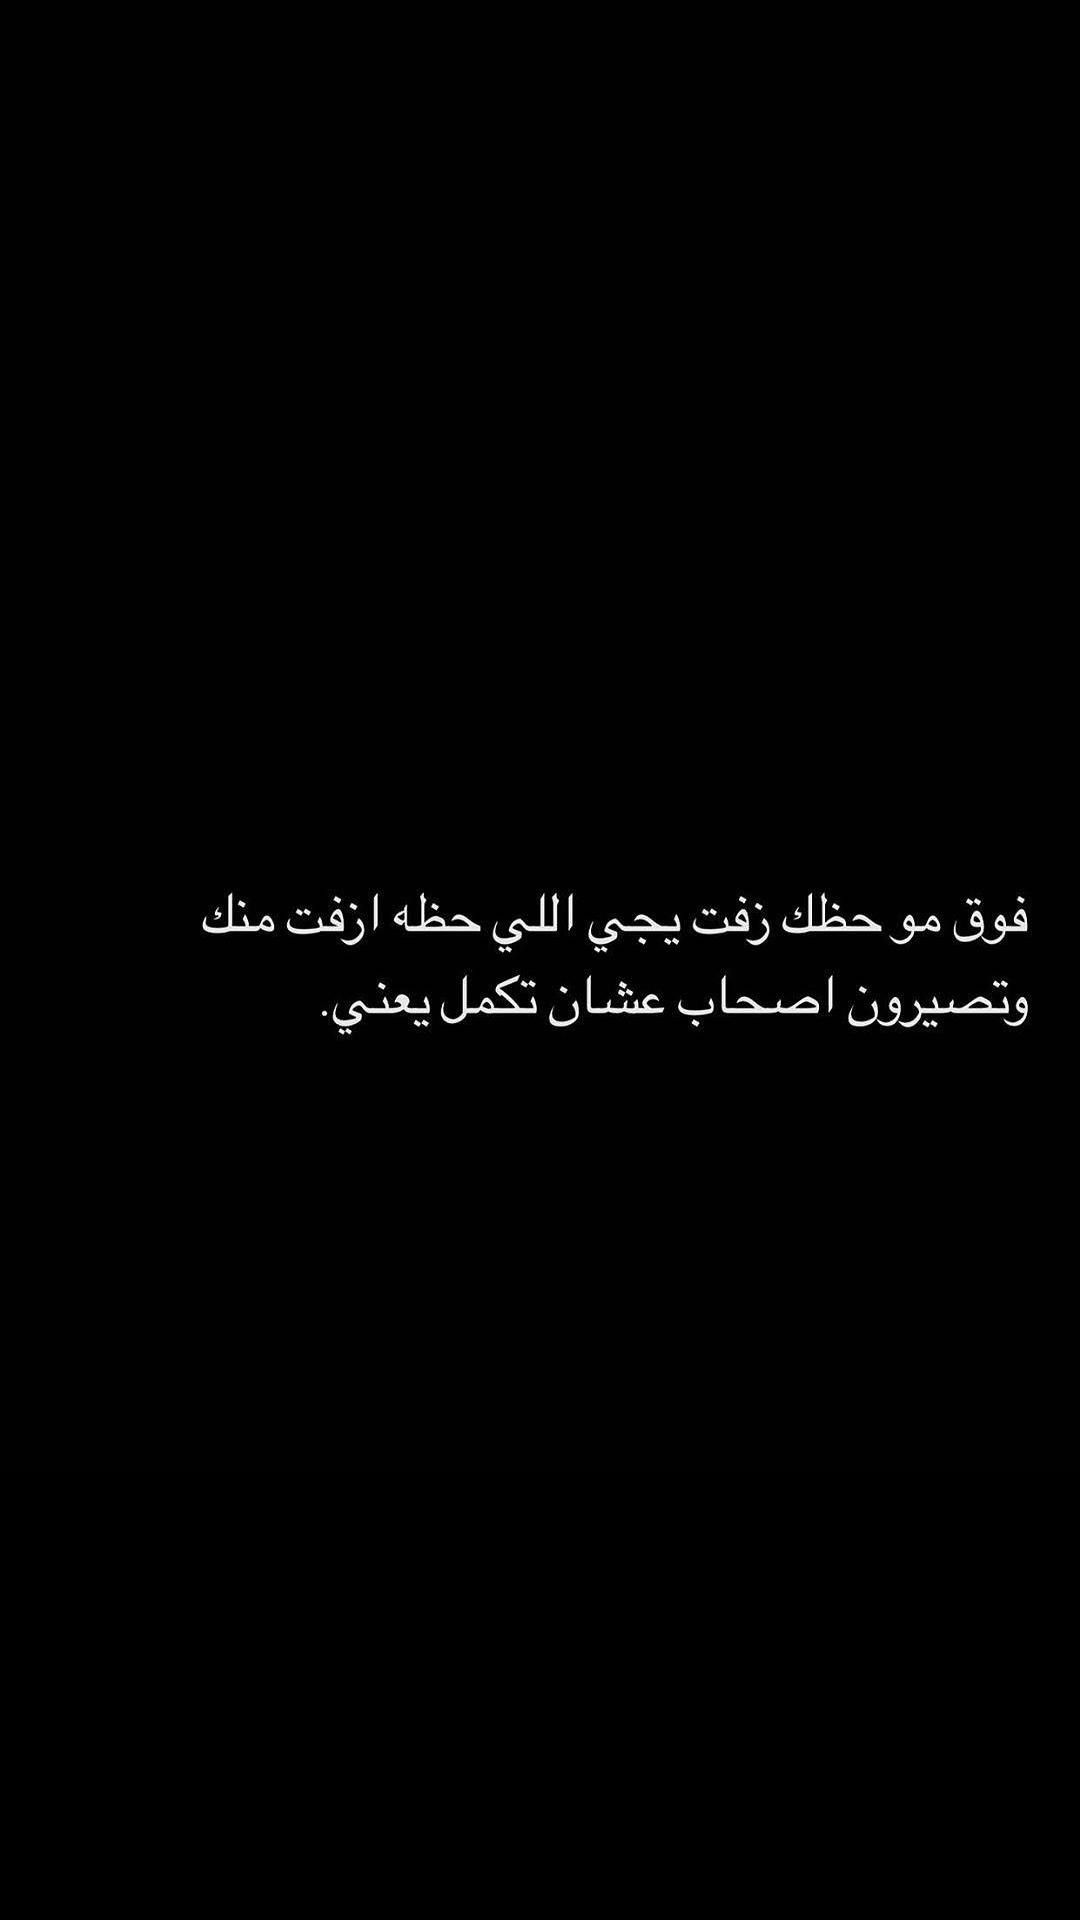 Pin By غ ـان يةة On استهبال Funny Study Quotes Calligraphy Quotes Love Cover Photo Quotes